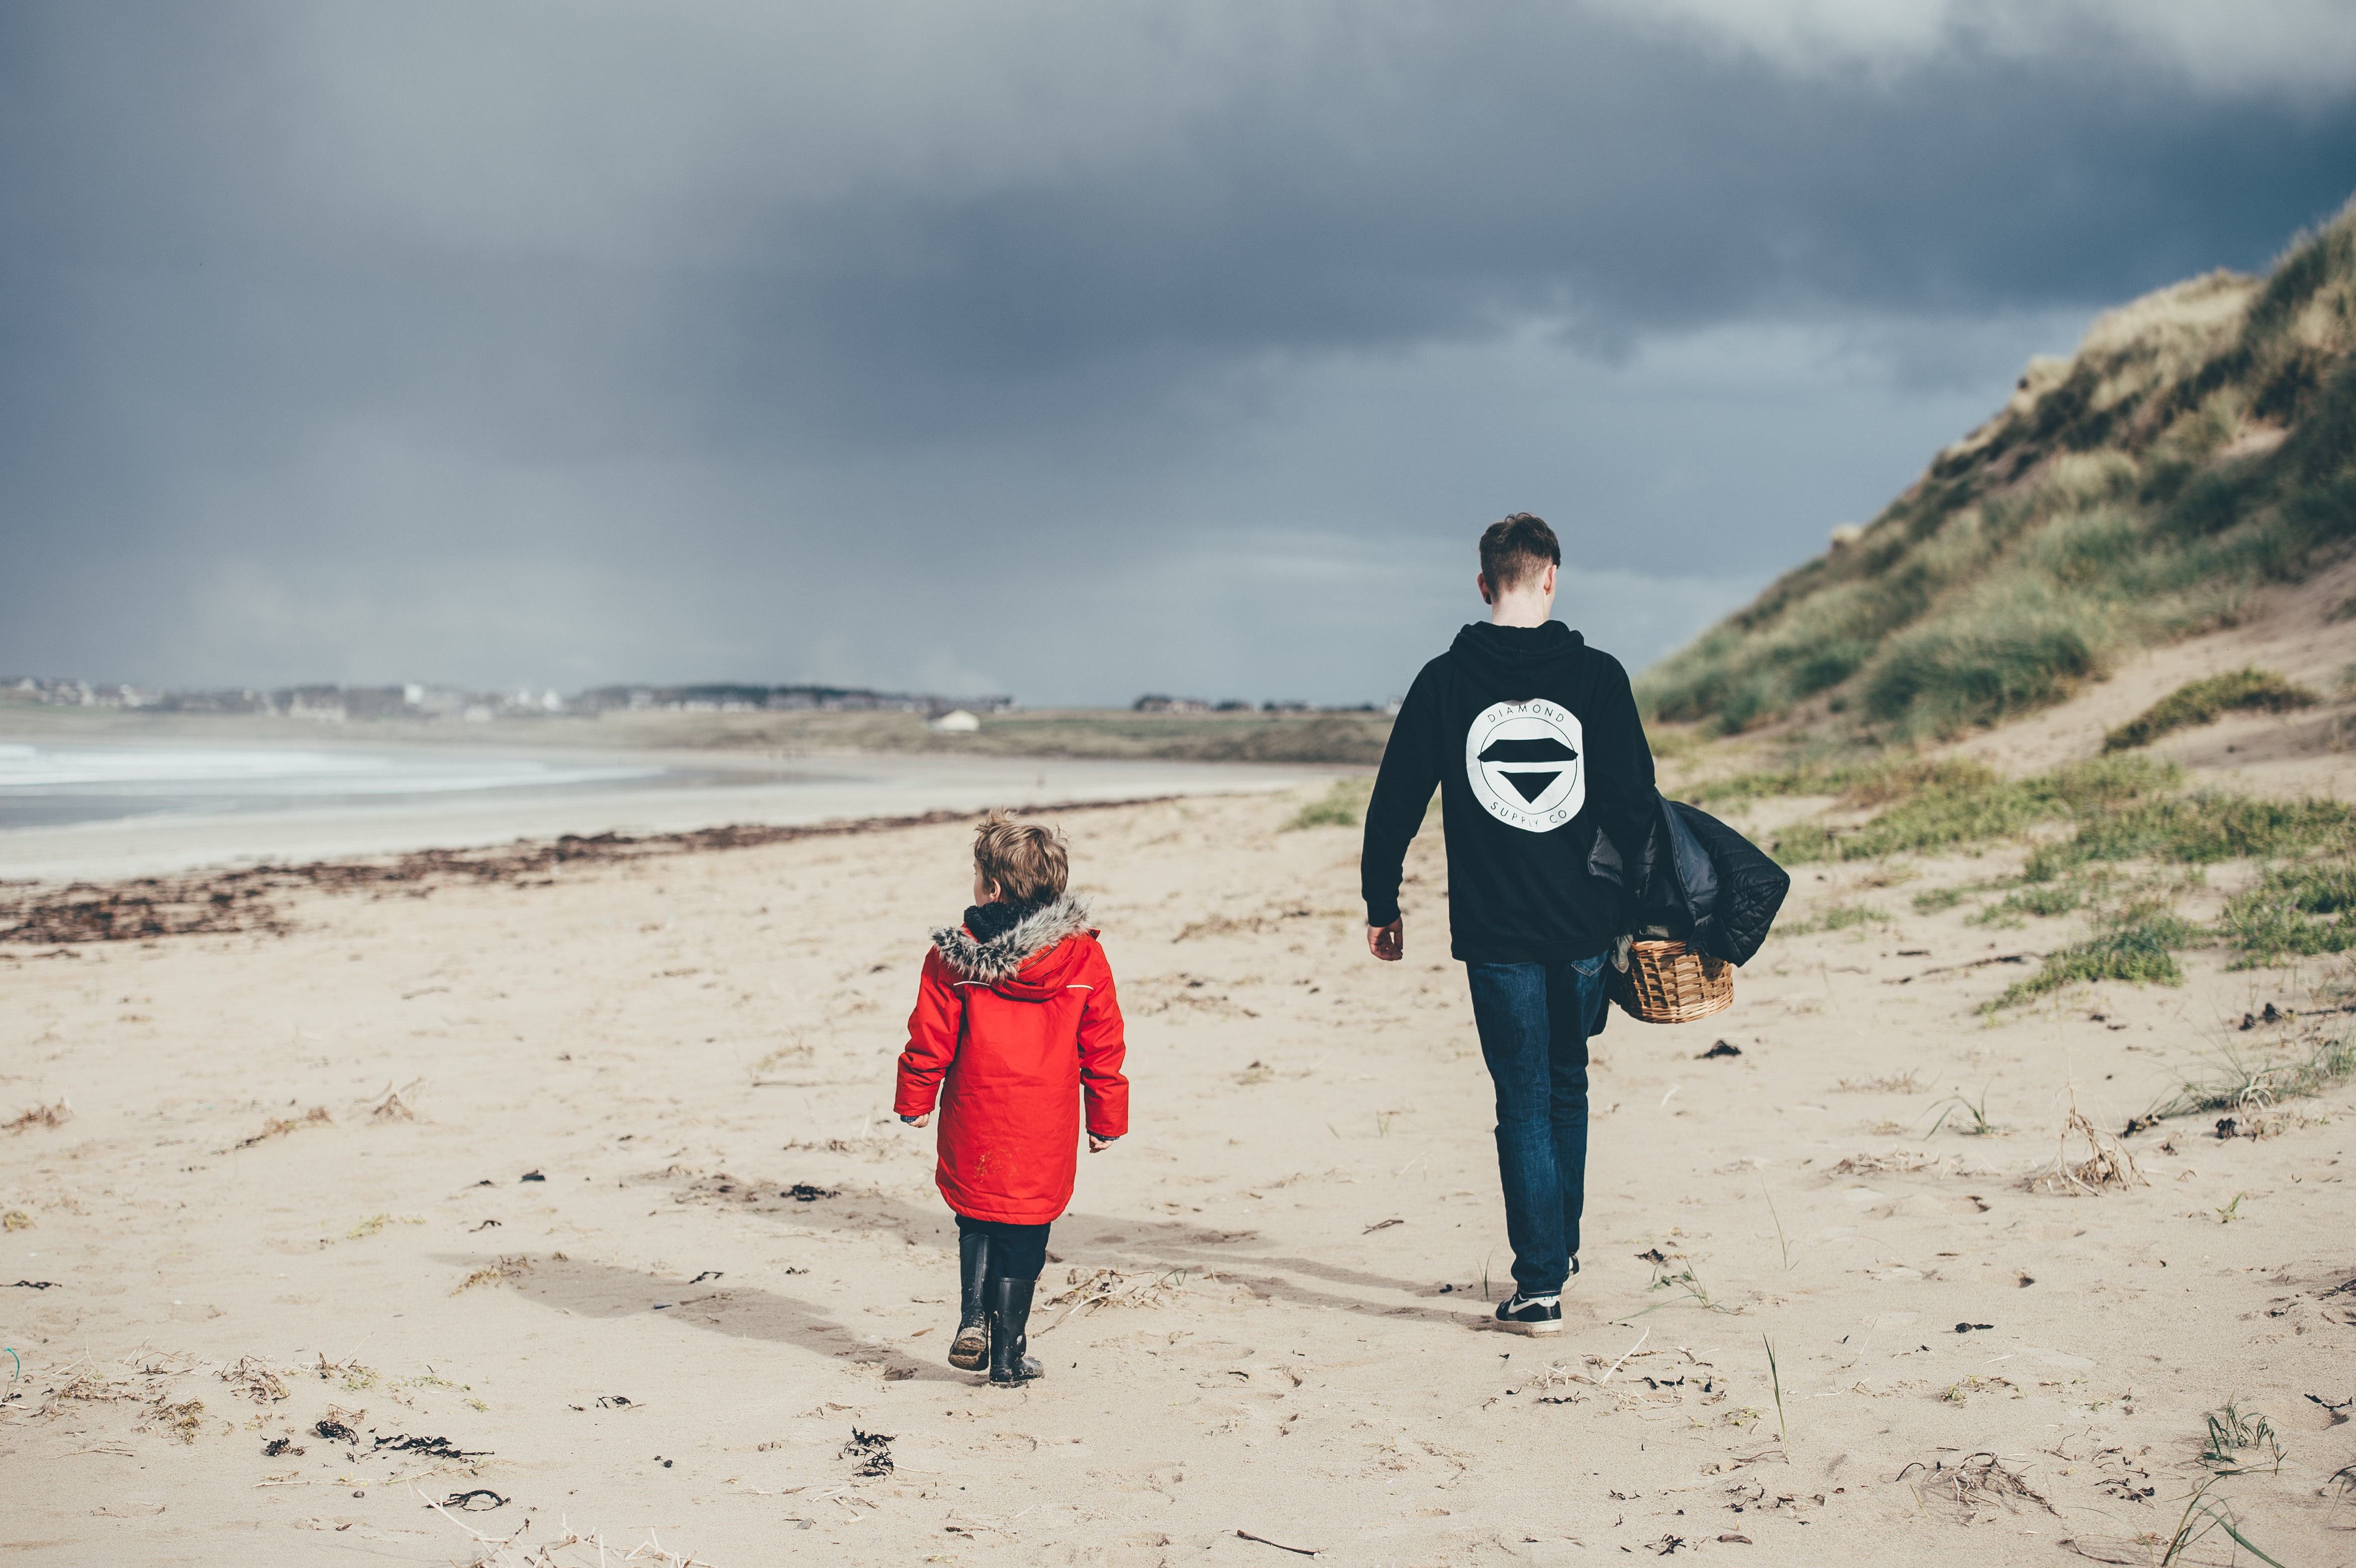 man and girl walking on beach